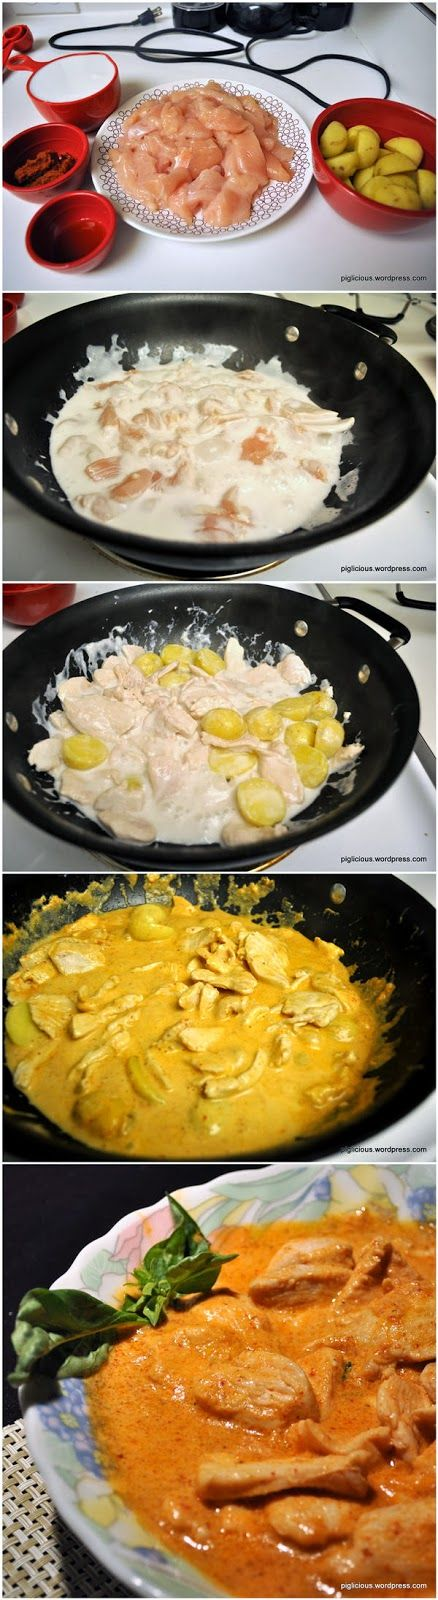 Thai panang curry chicken in the slow cooker